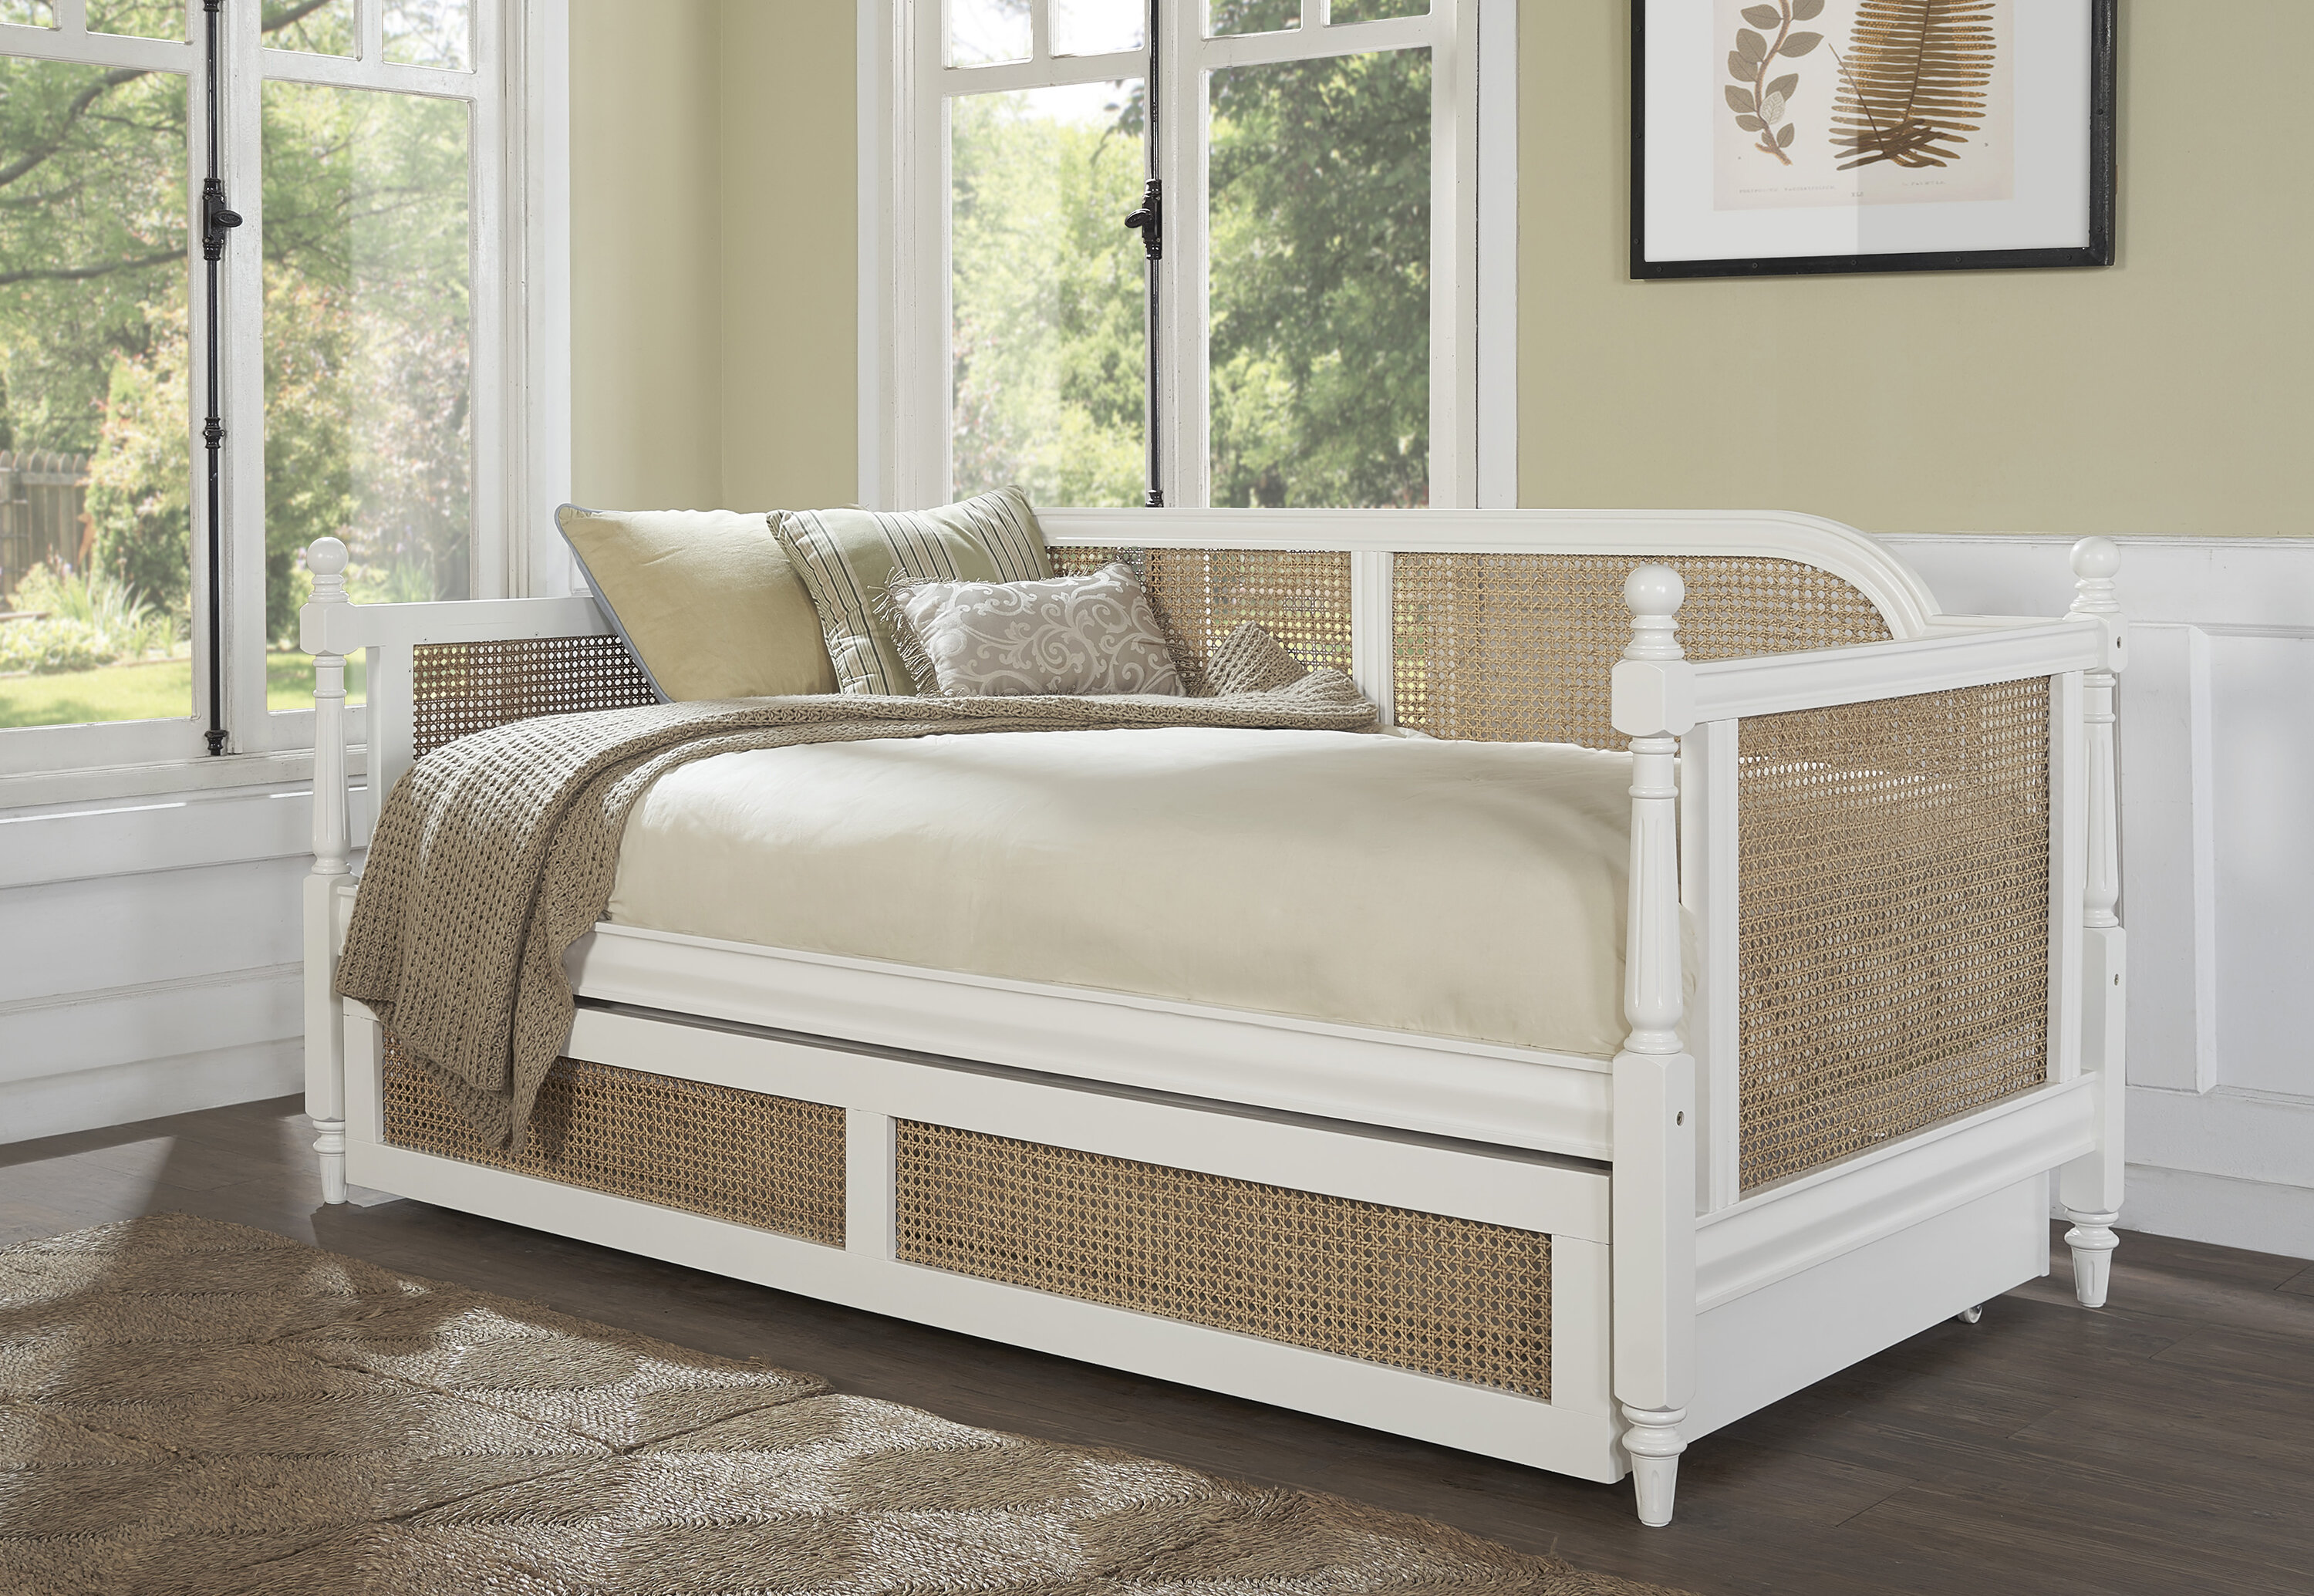 Meaghan Twin Daybed With Trundle Reviews Joss Main